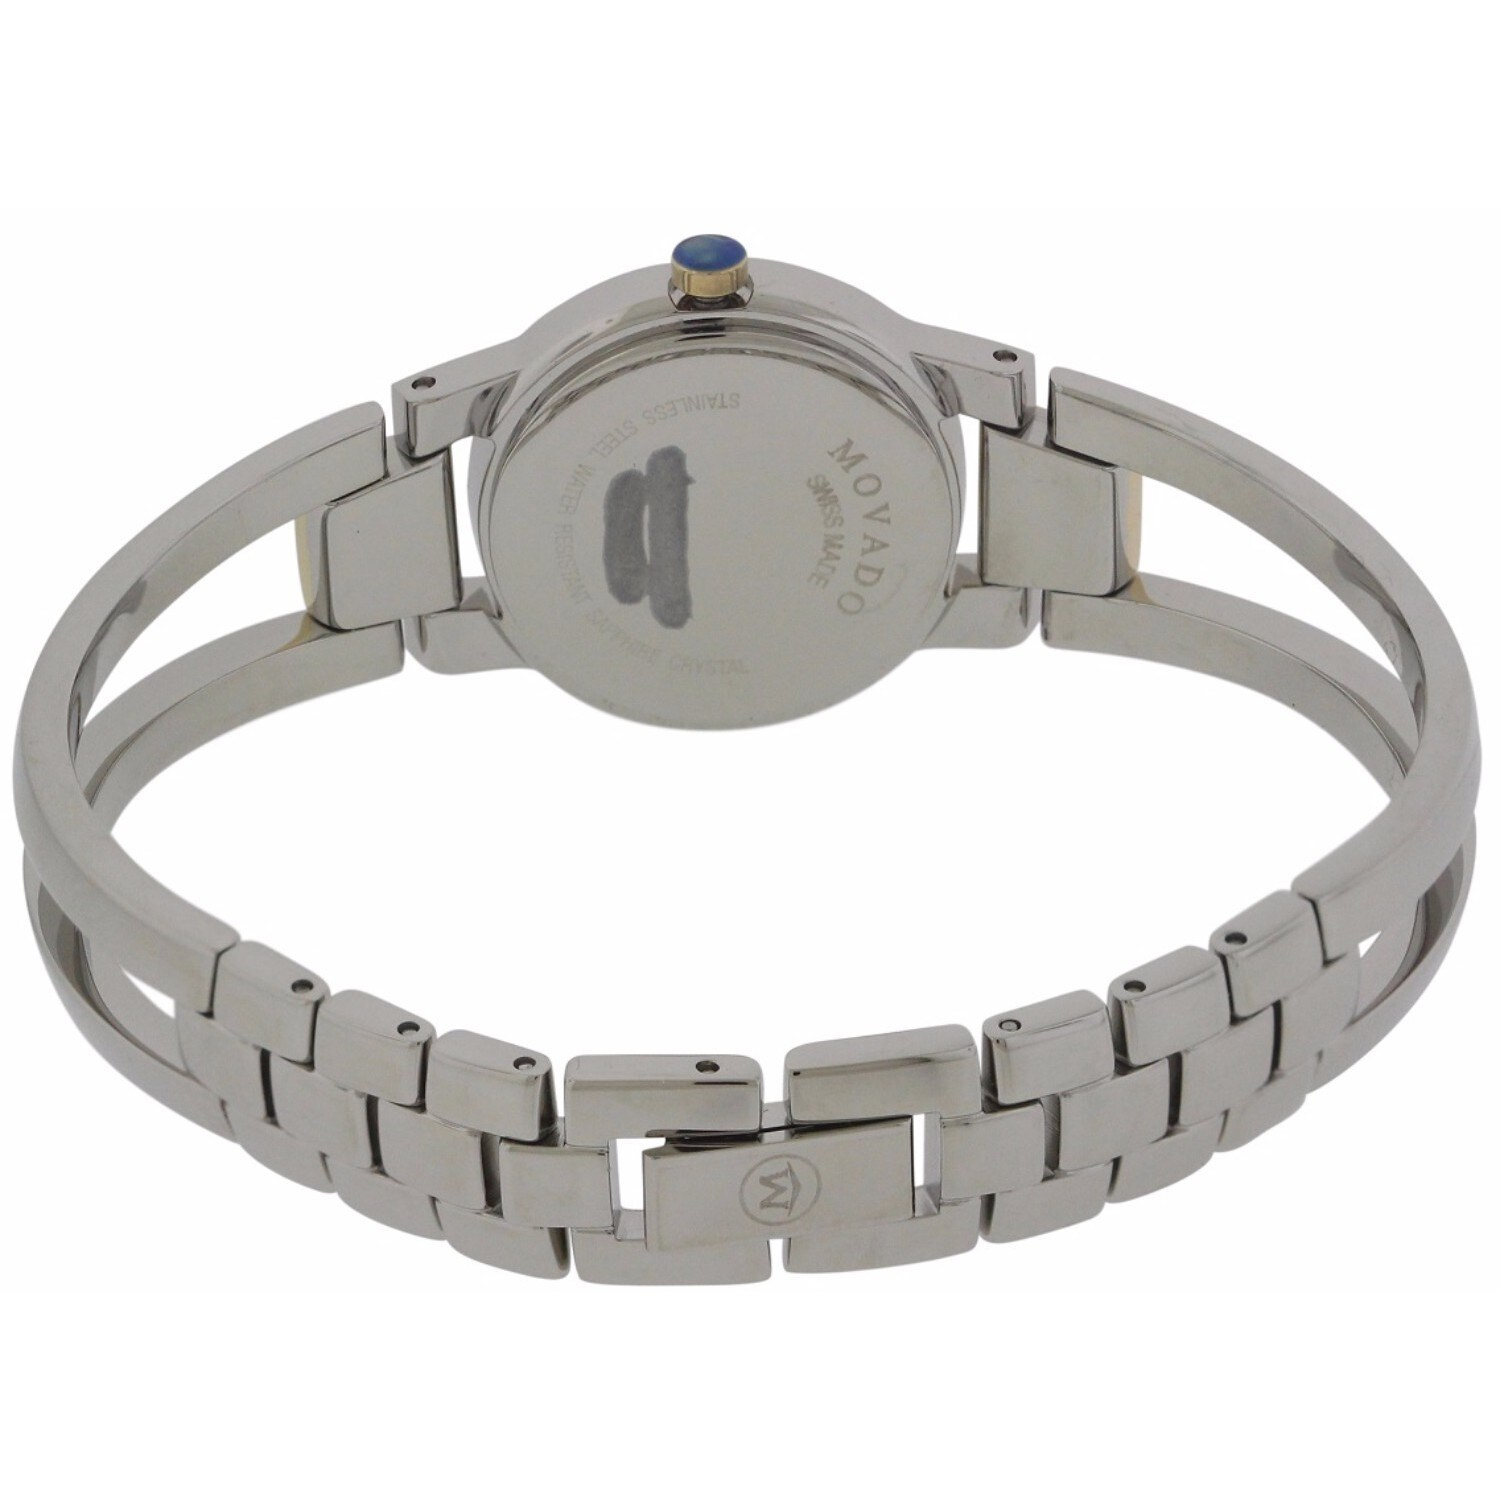 54420b5cd12 Shop Movado Women s 0606894 Amorosa Stainless Steel Lady s Watch - Free  Shipping Today - Overstock - 14595888